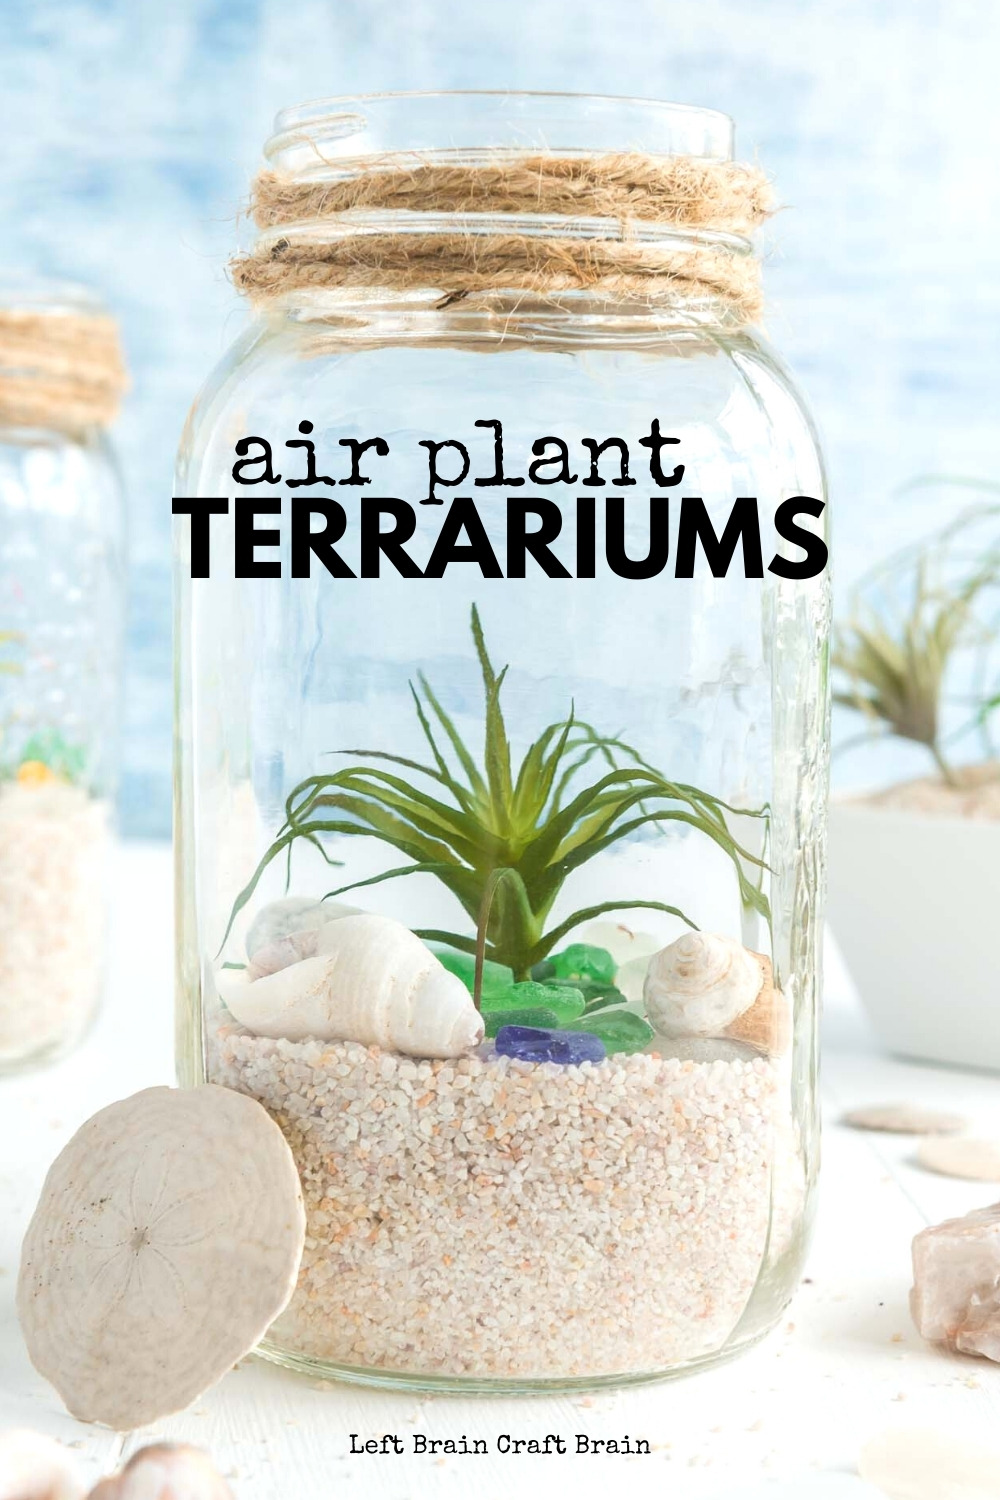 Air Plant Terrariums are fun projects for kids and adults. They're beautiful ways to decorate your home and learn about nature. They make great gifts too.